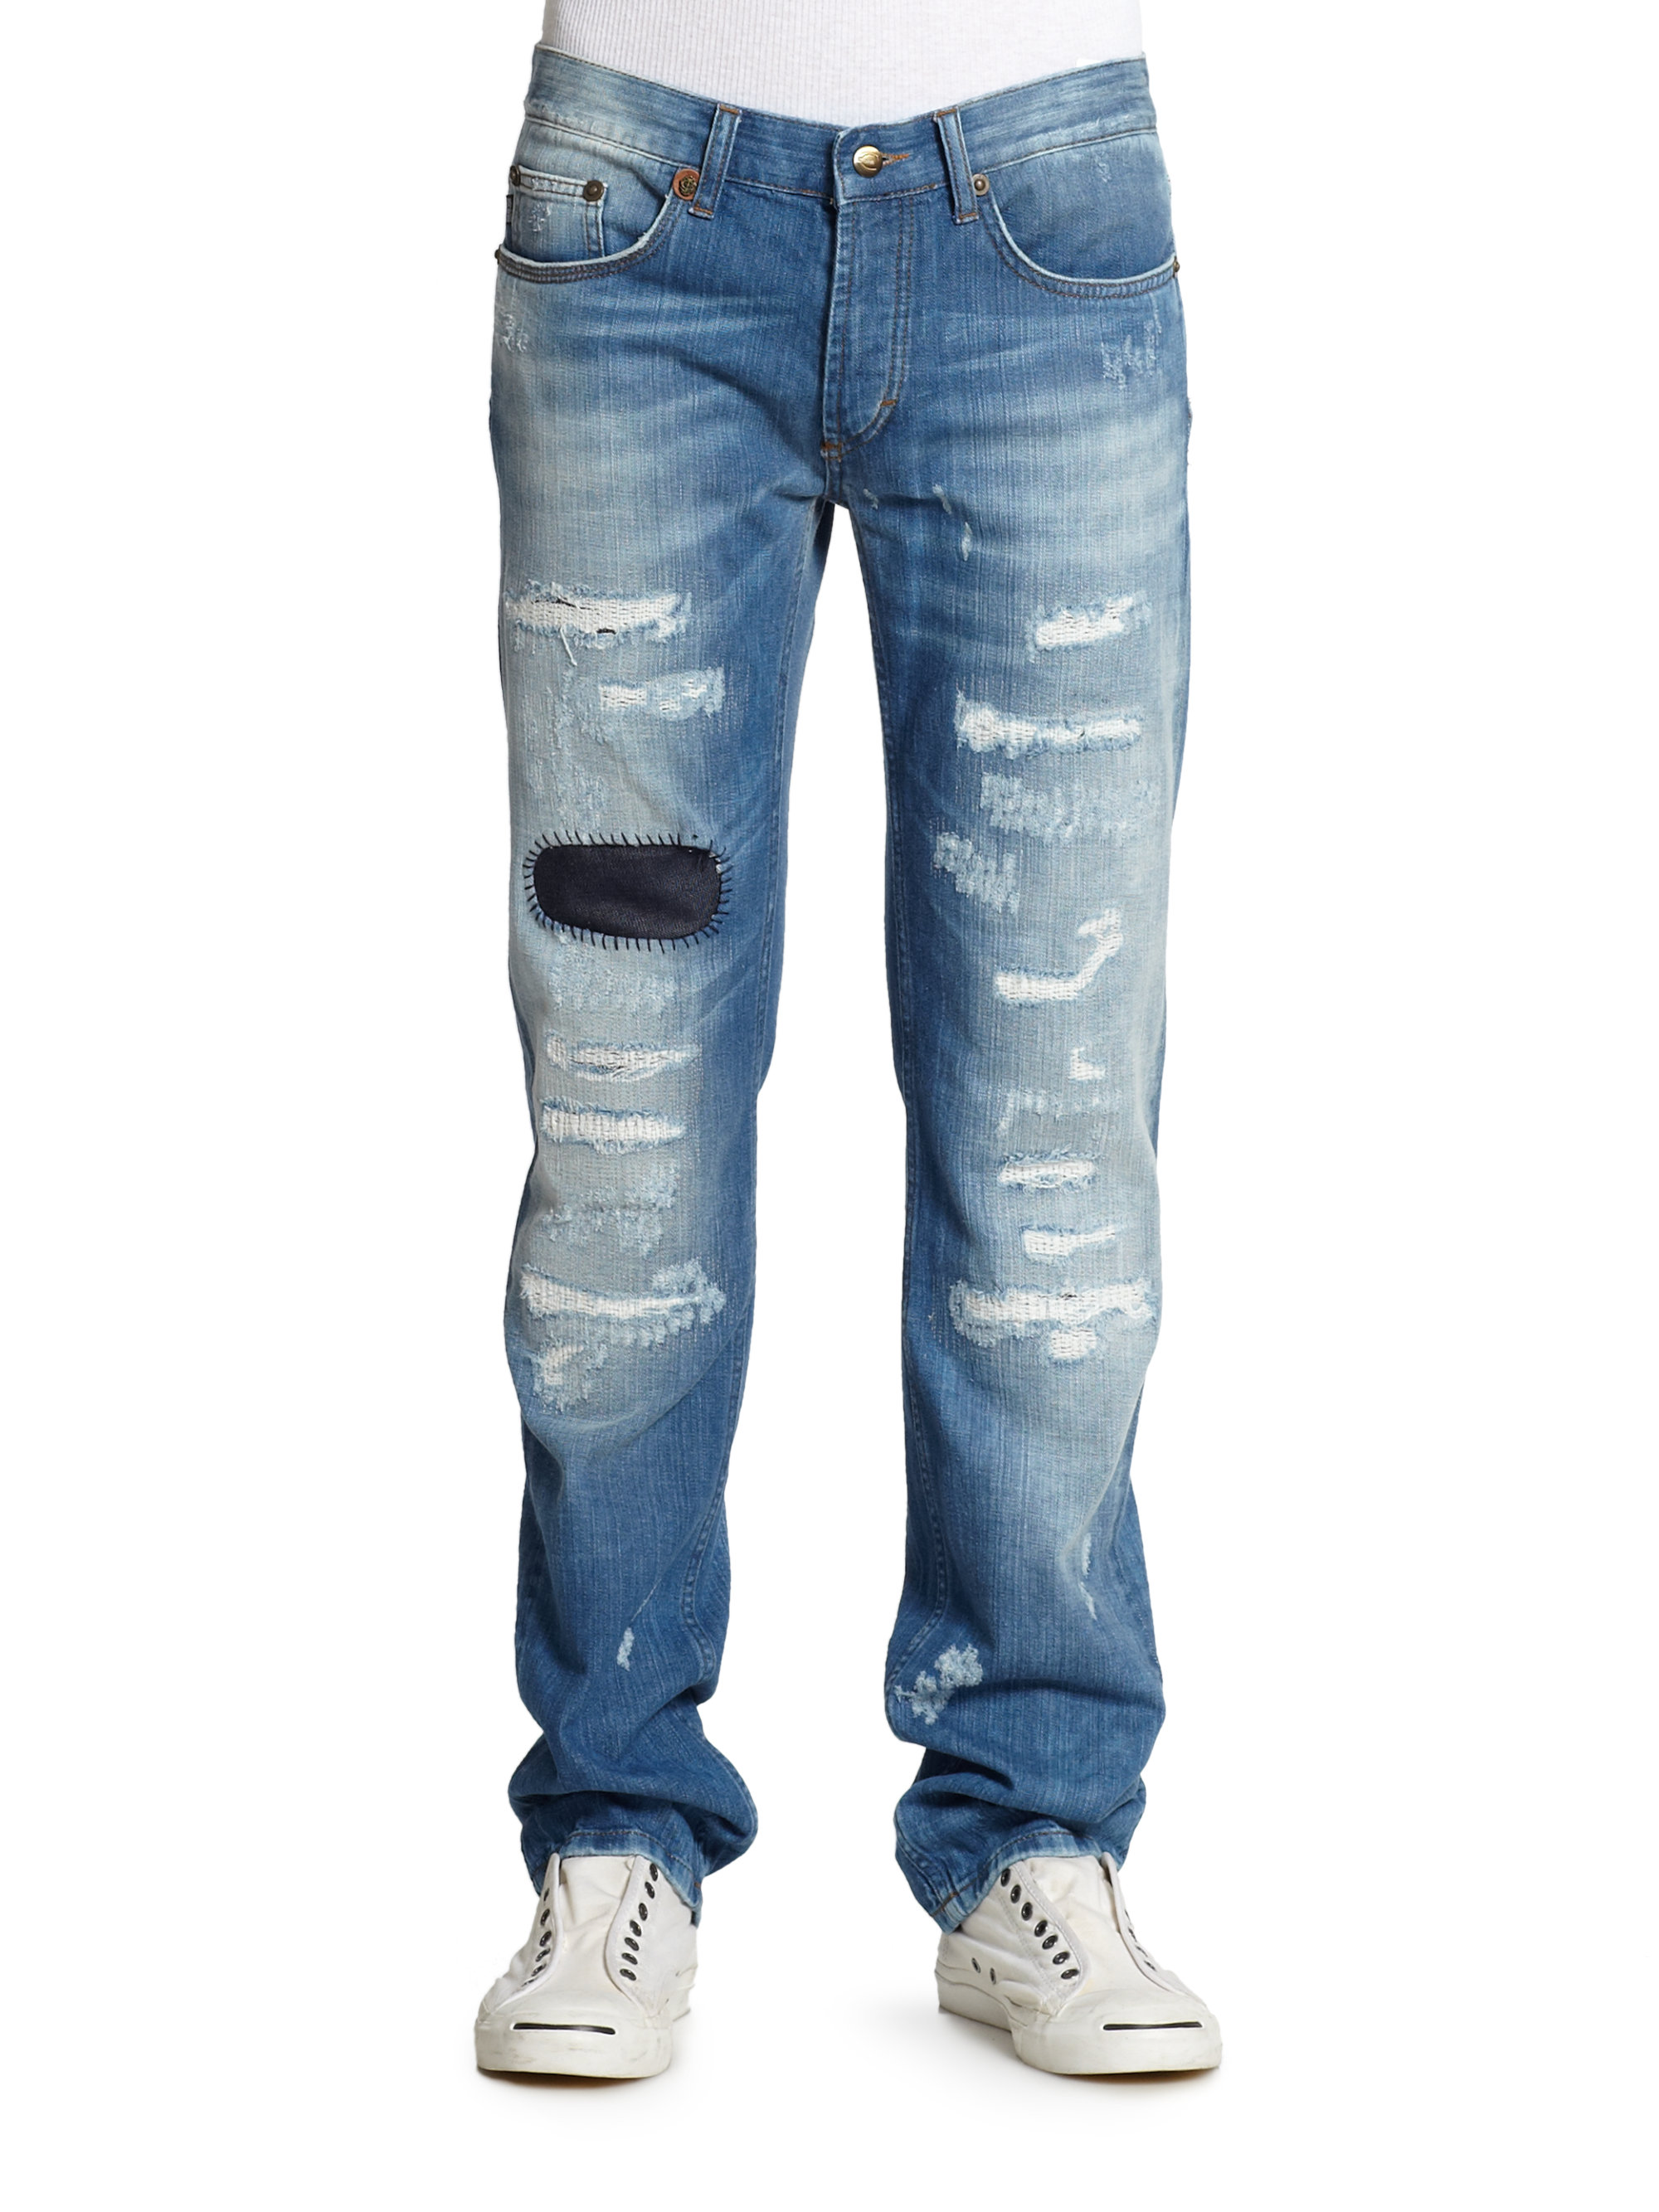 Sale Recommend faded distressed detail jeans - Blue Just Cavalli Clearance Best Seller Nicekicks For Sale Discount 2018 azfh5